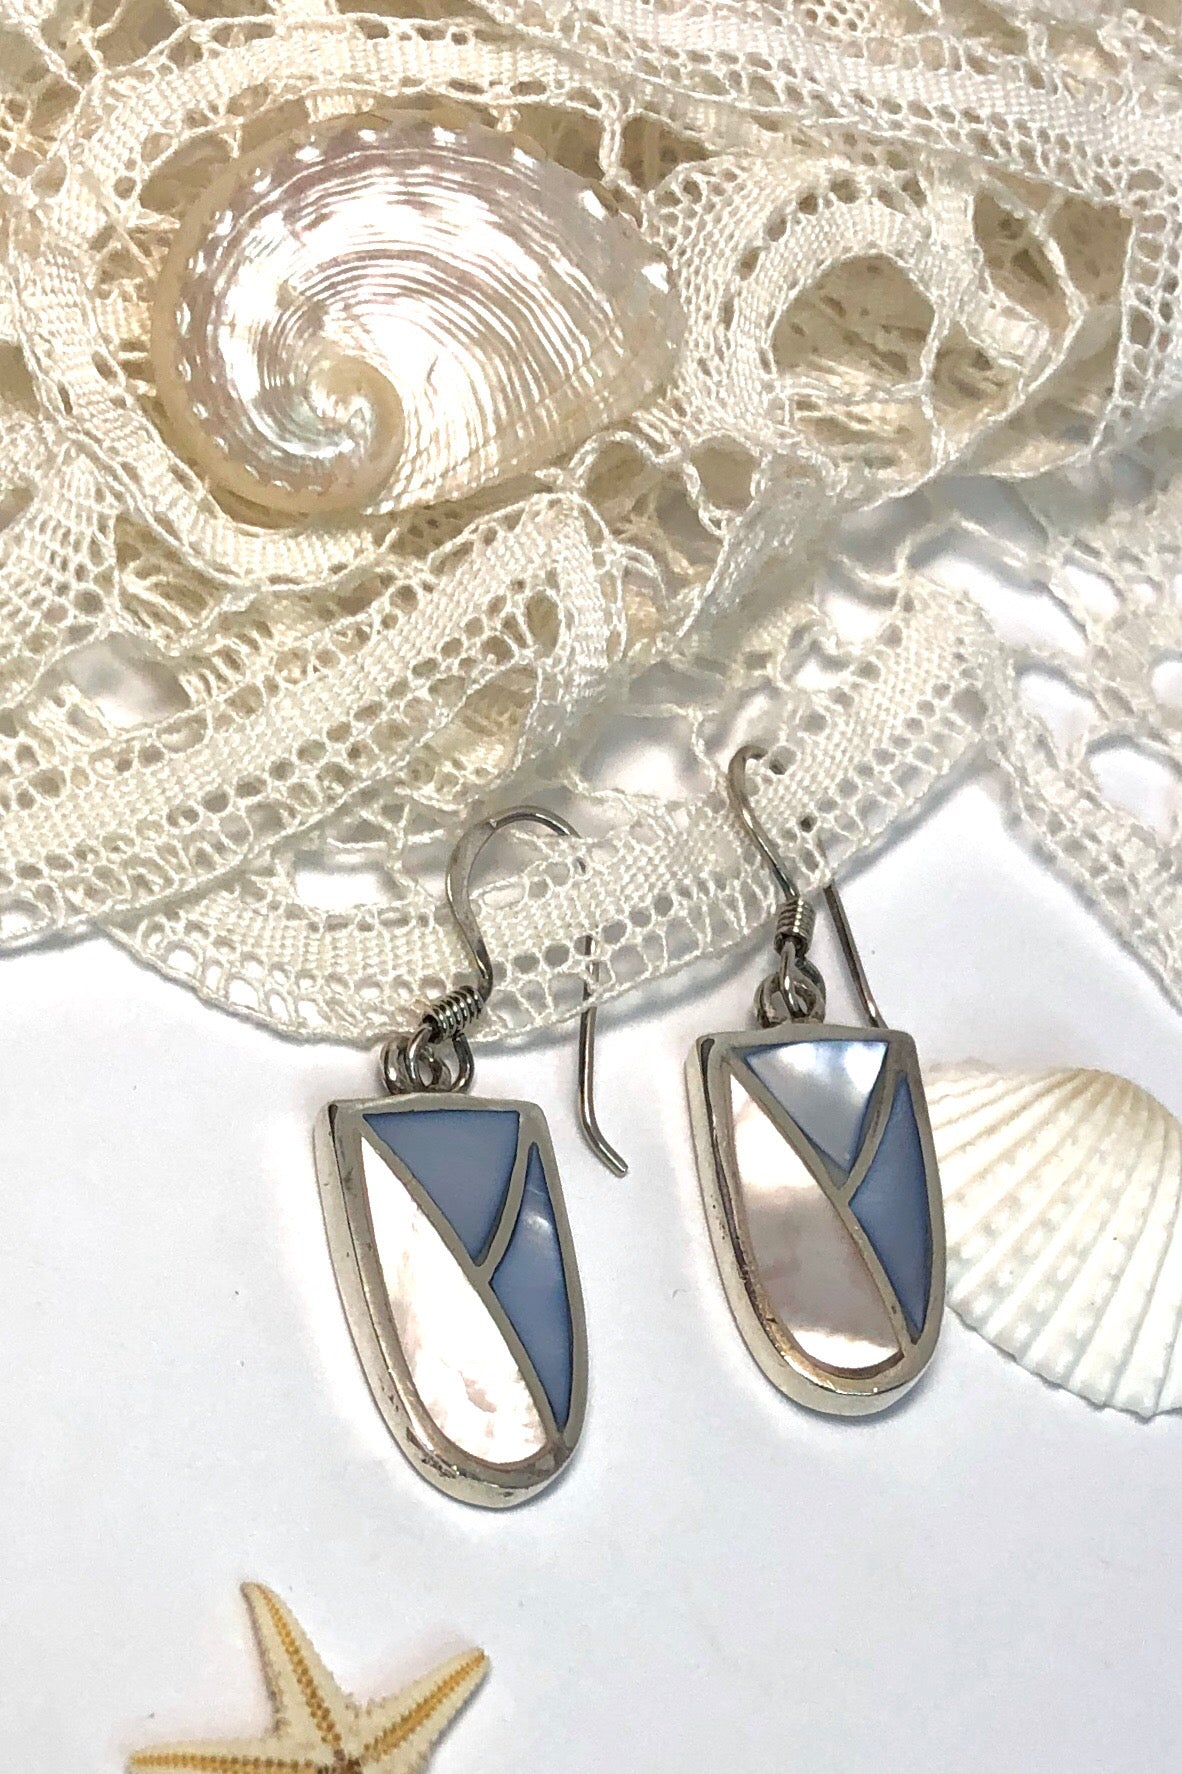 Earrings Sala Pop Inlay in 925 Silver are drop style earrings featuring an inlay of Mother of Pearl.